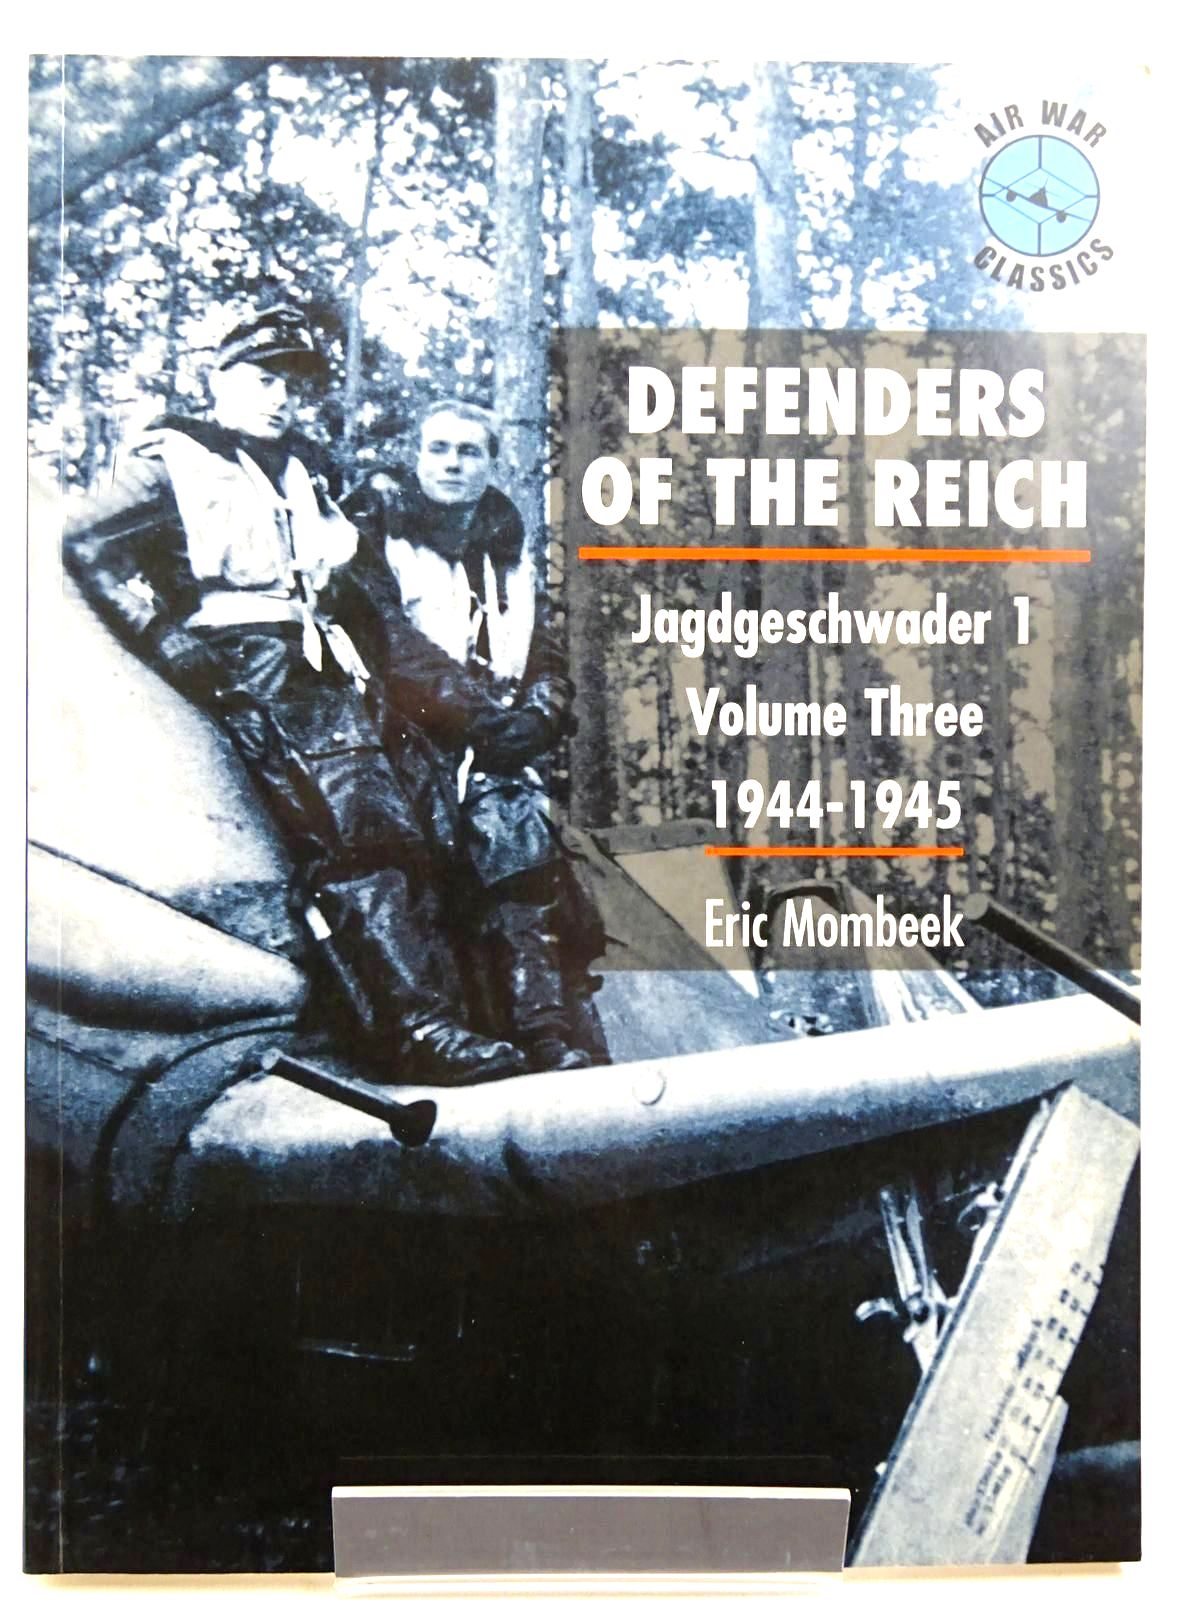 Photo of DEFENDERS OF THE REICH JAGDGESCHWADER 1 VOLUME THREE 1944-1945 written by Mombeek, Eric published by Classic Publications (STOCK CODE: 2131605)  for sale by Stella & Rose's Books